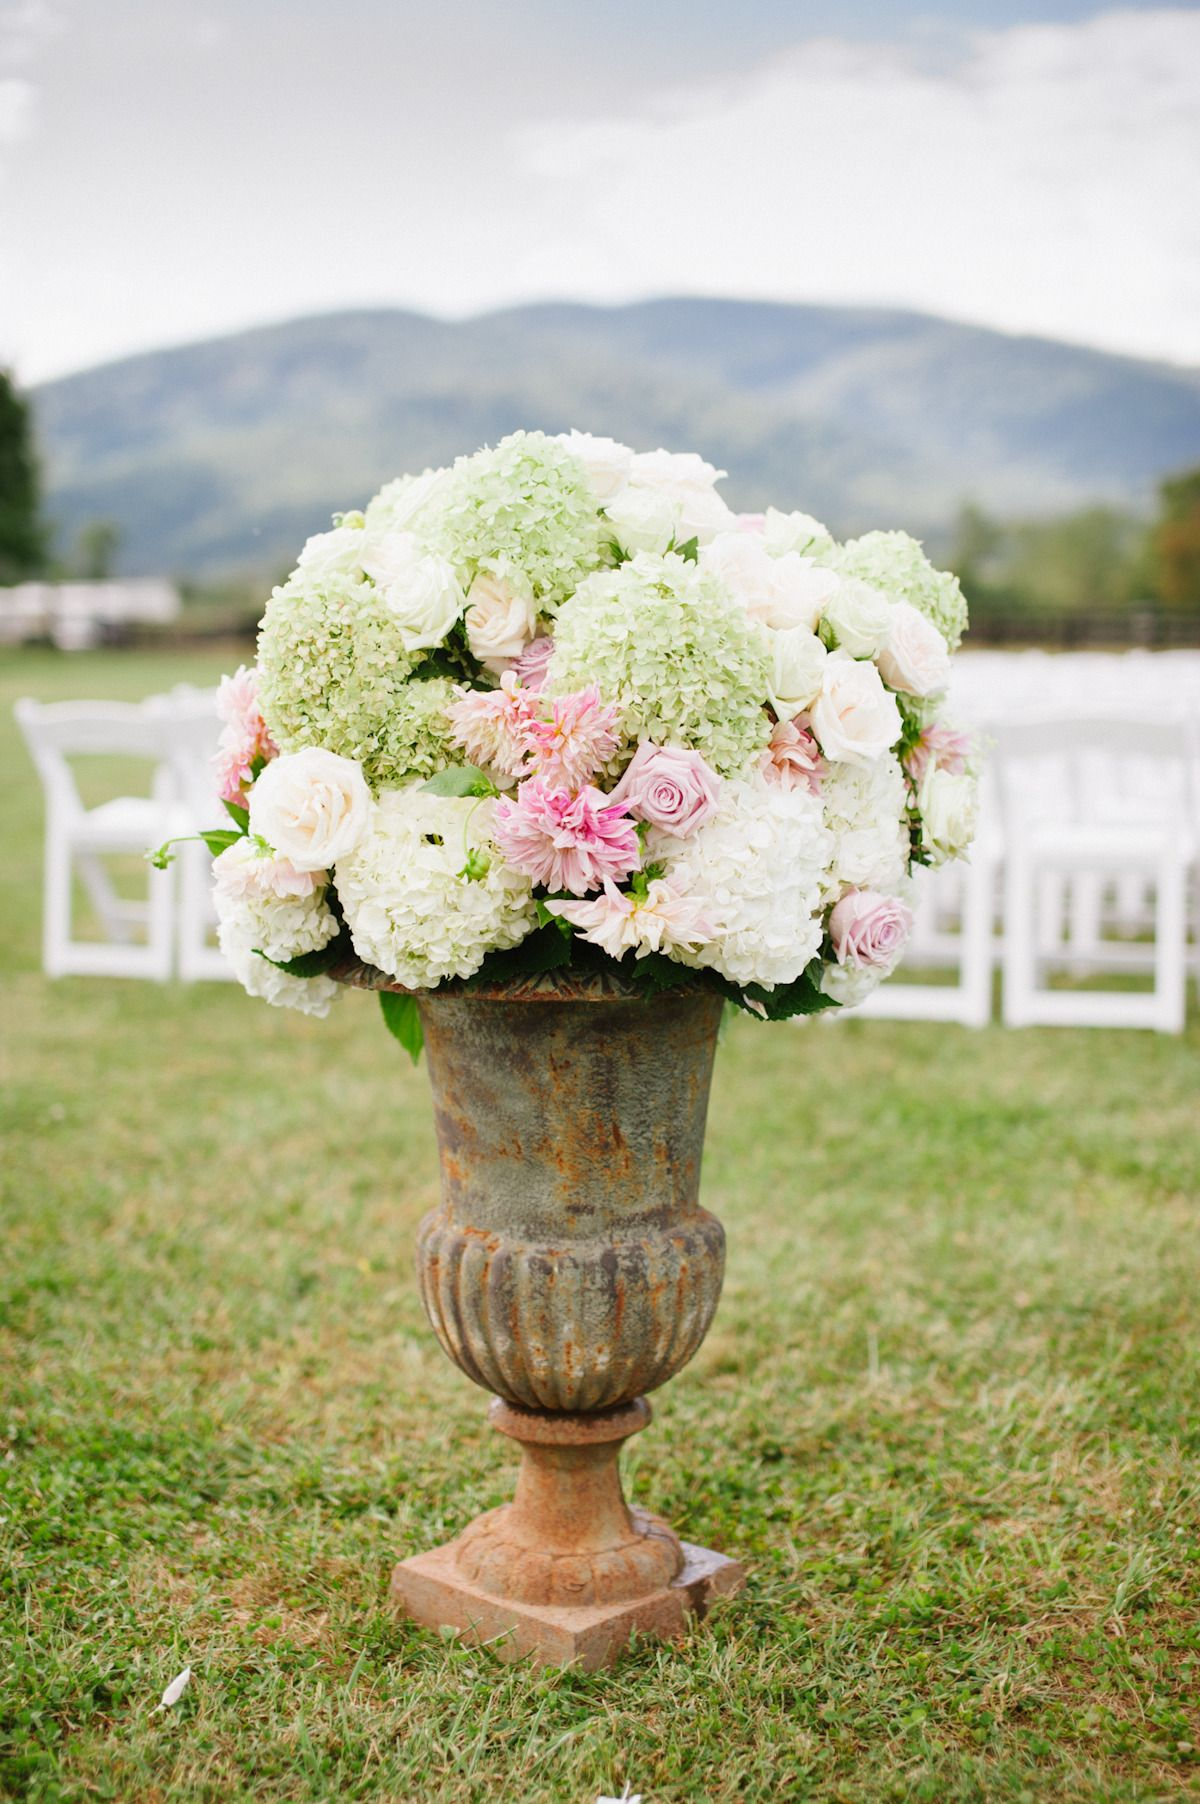 Wedding flower decoration images  King Family Vineyards Wedding  Wedding Flower ideas and Weddings